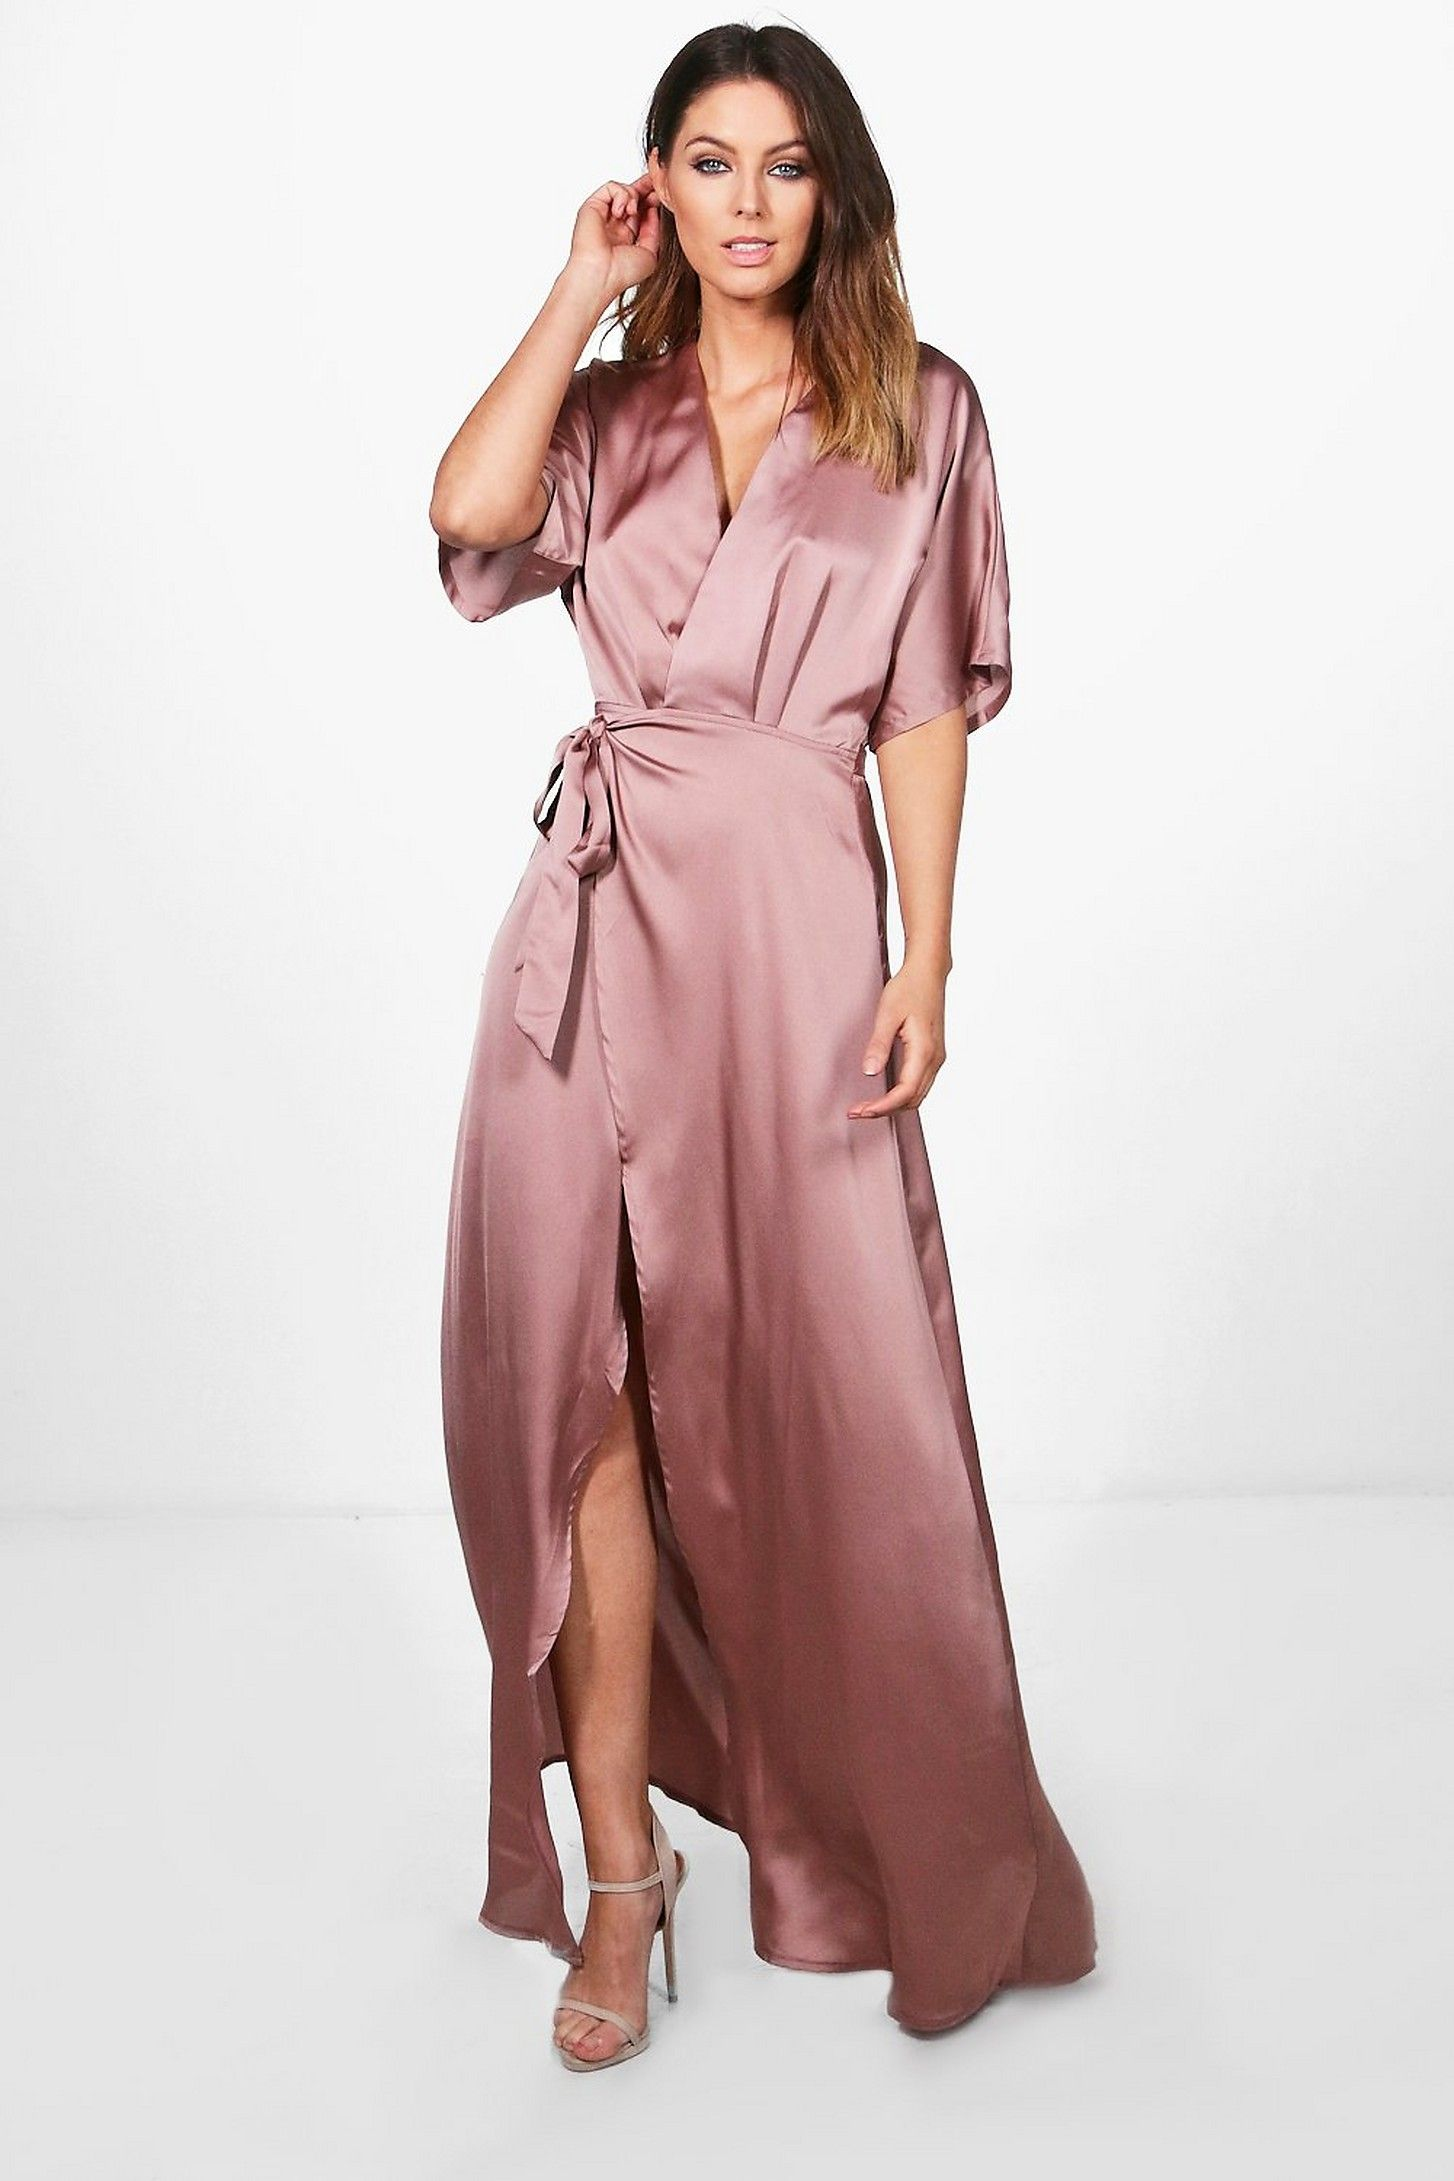 wholesale online 2019 authentic high quality materials Boutique Satin Kimono Maxi Dress | Boohoo | Special Occasion ...